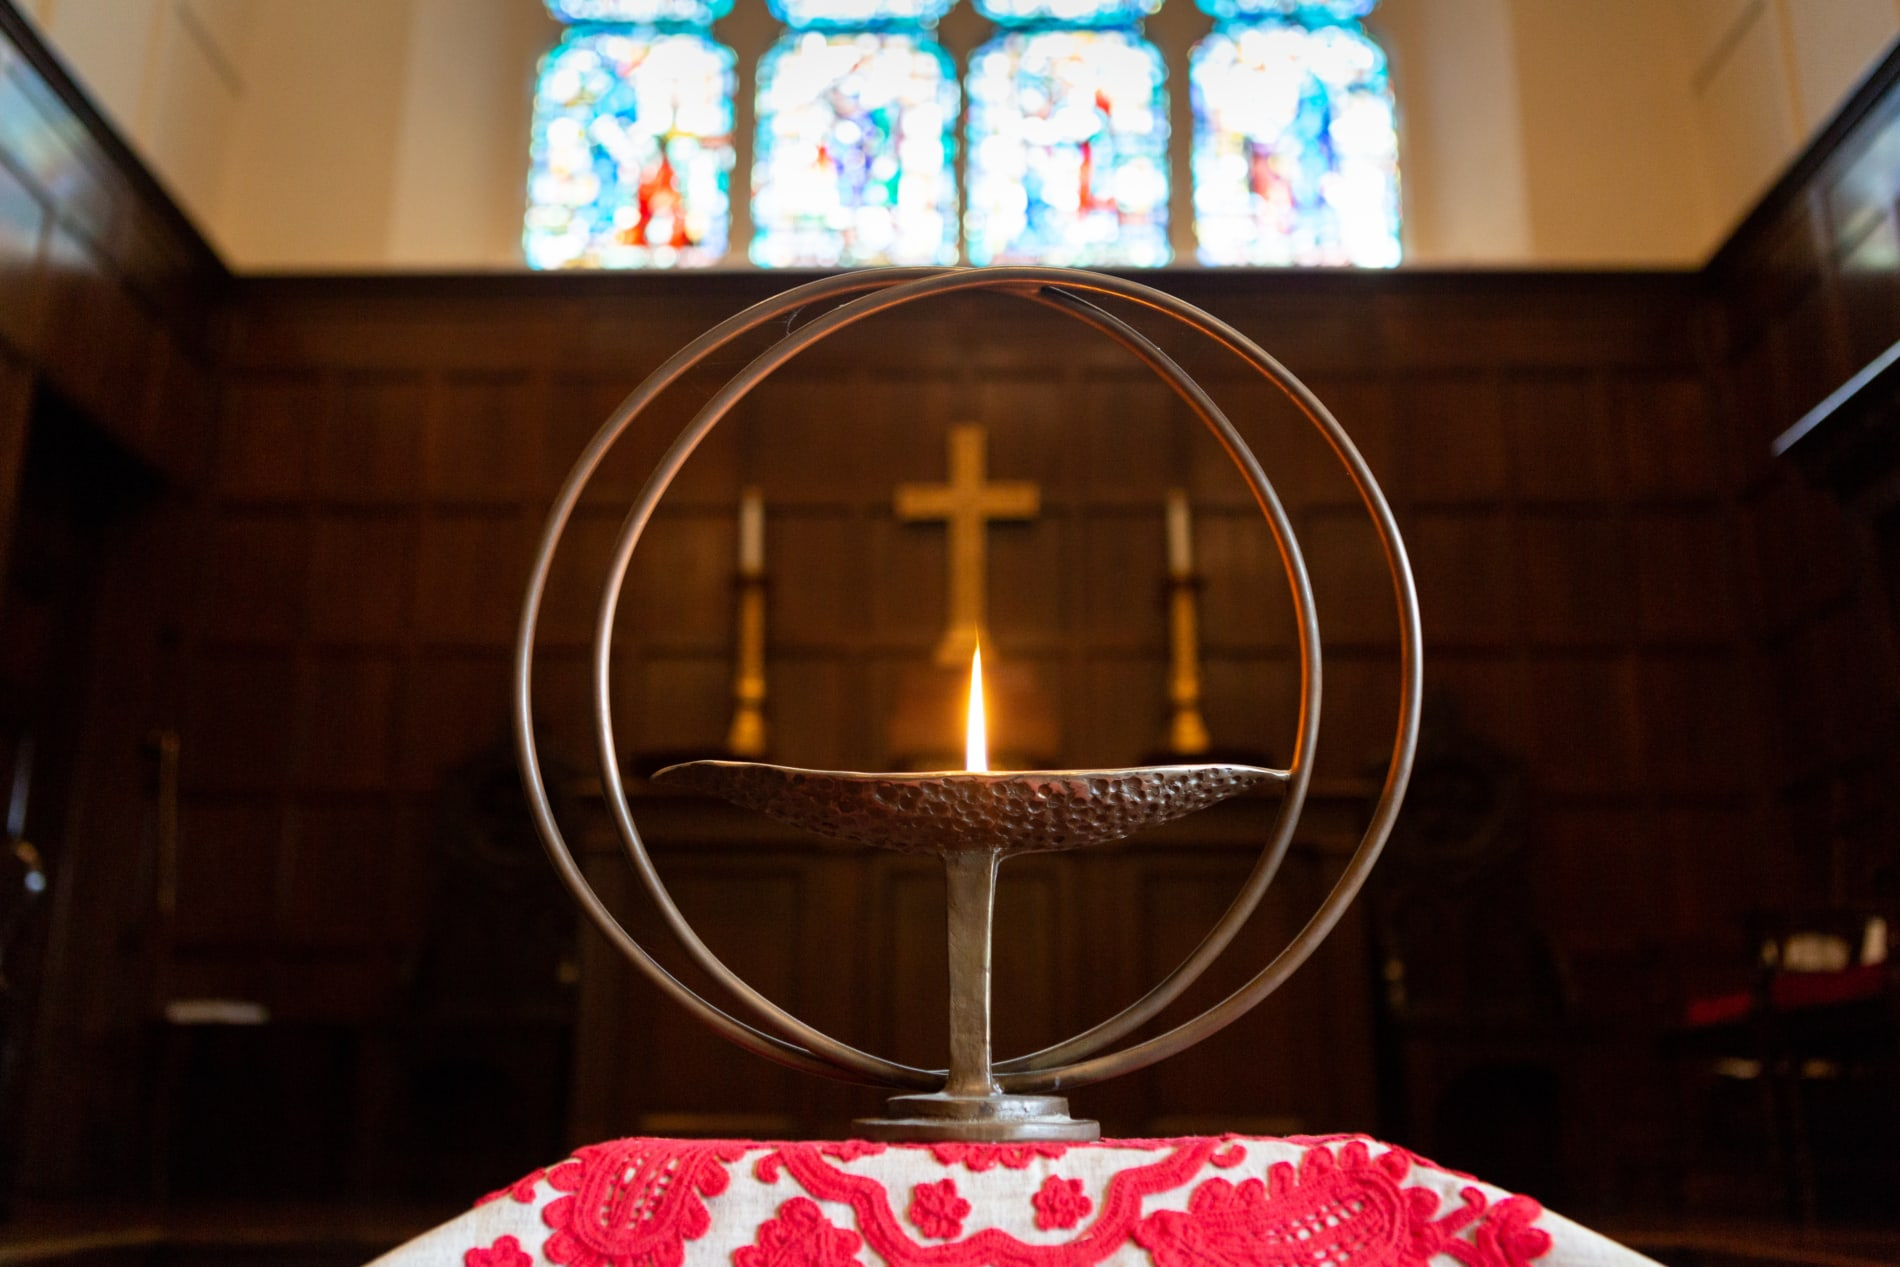 The Unitarian flaming chalice with a cross in the background